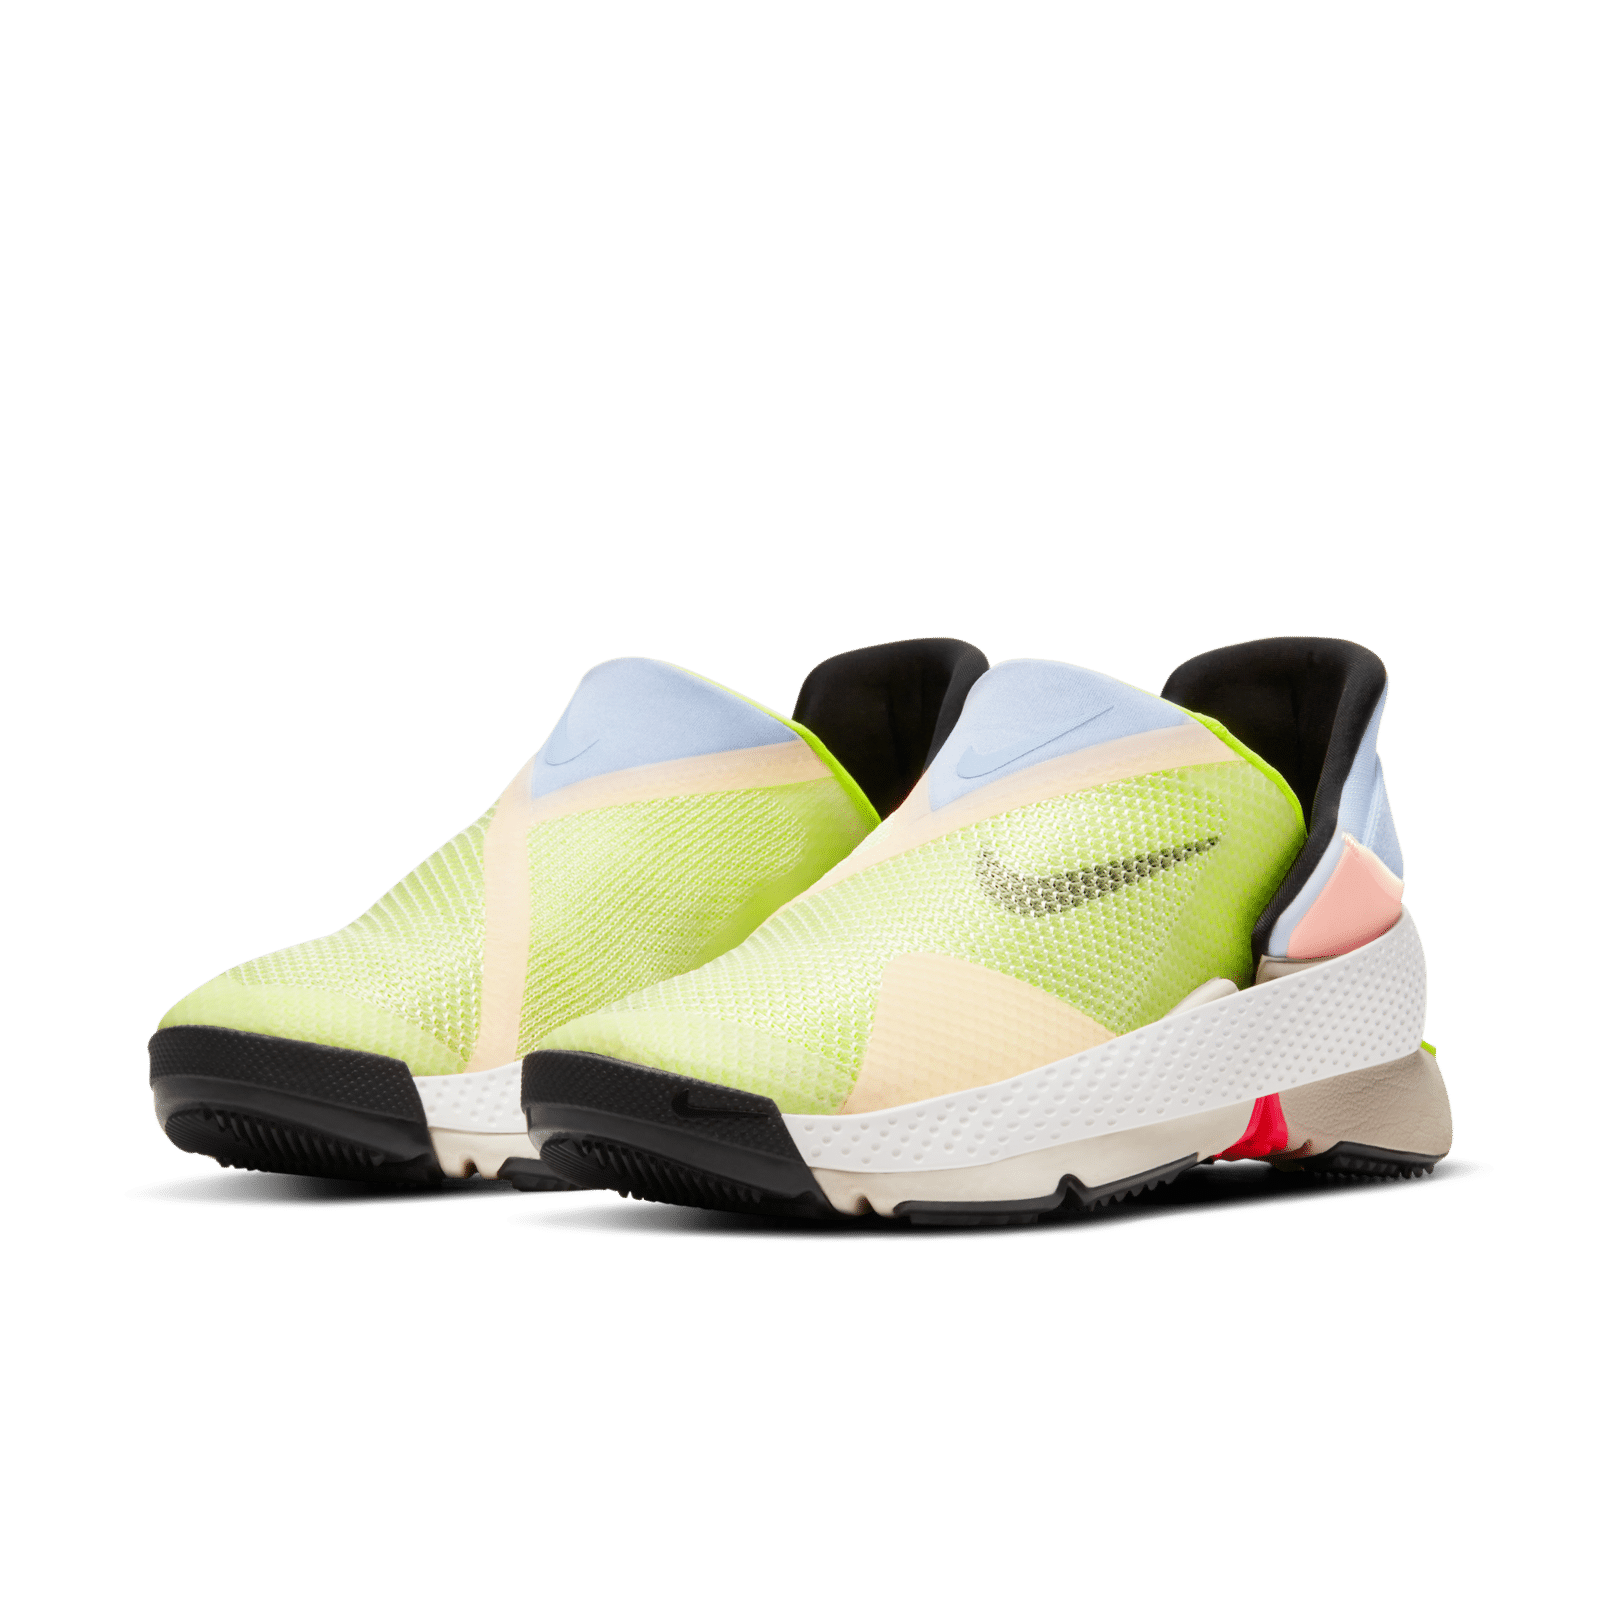 Nike GO FlyEase Serving The Broadest Range Of Active Lifestyles Possible